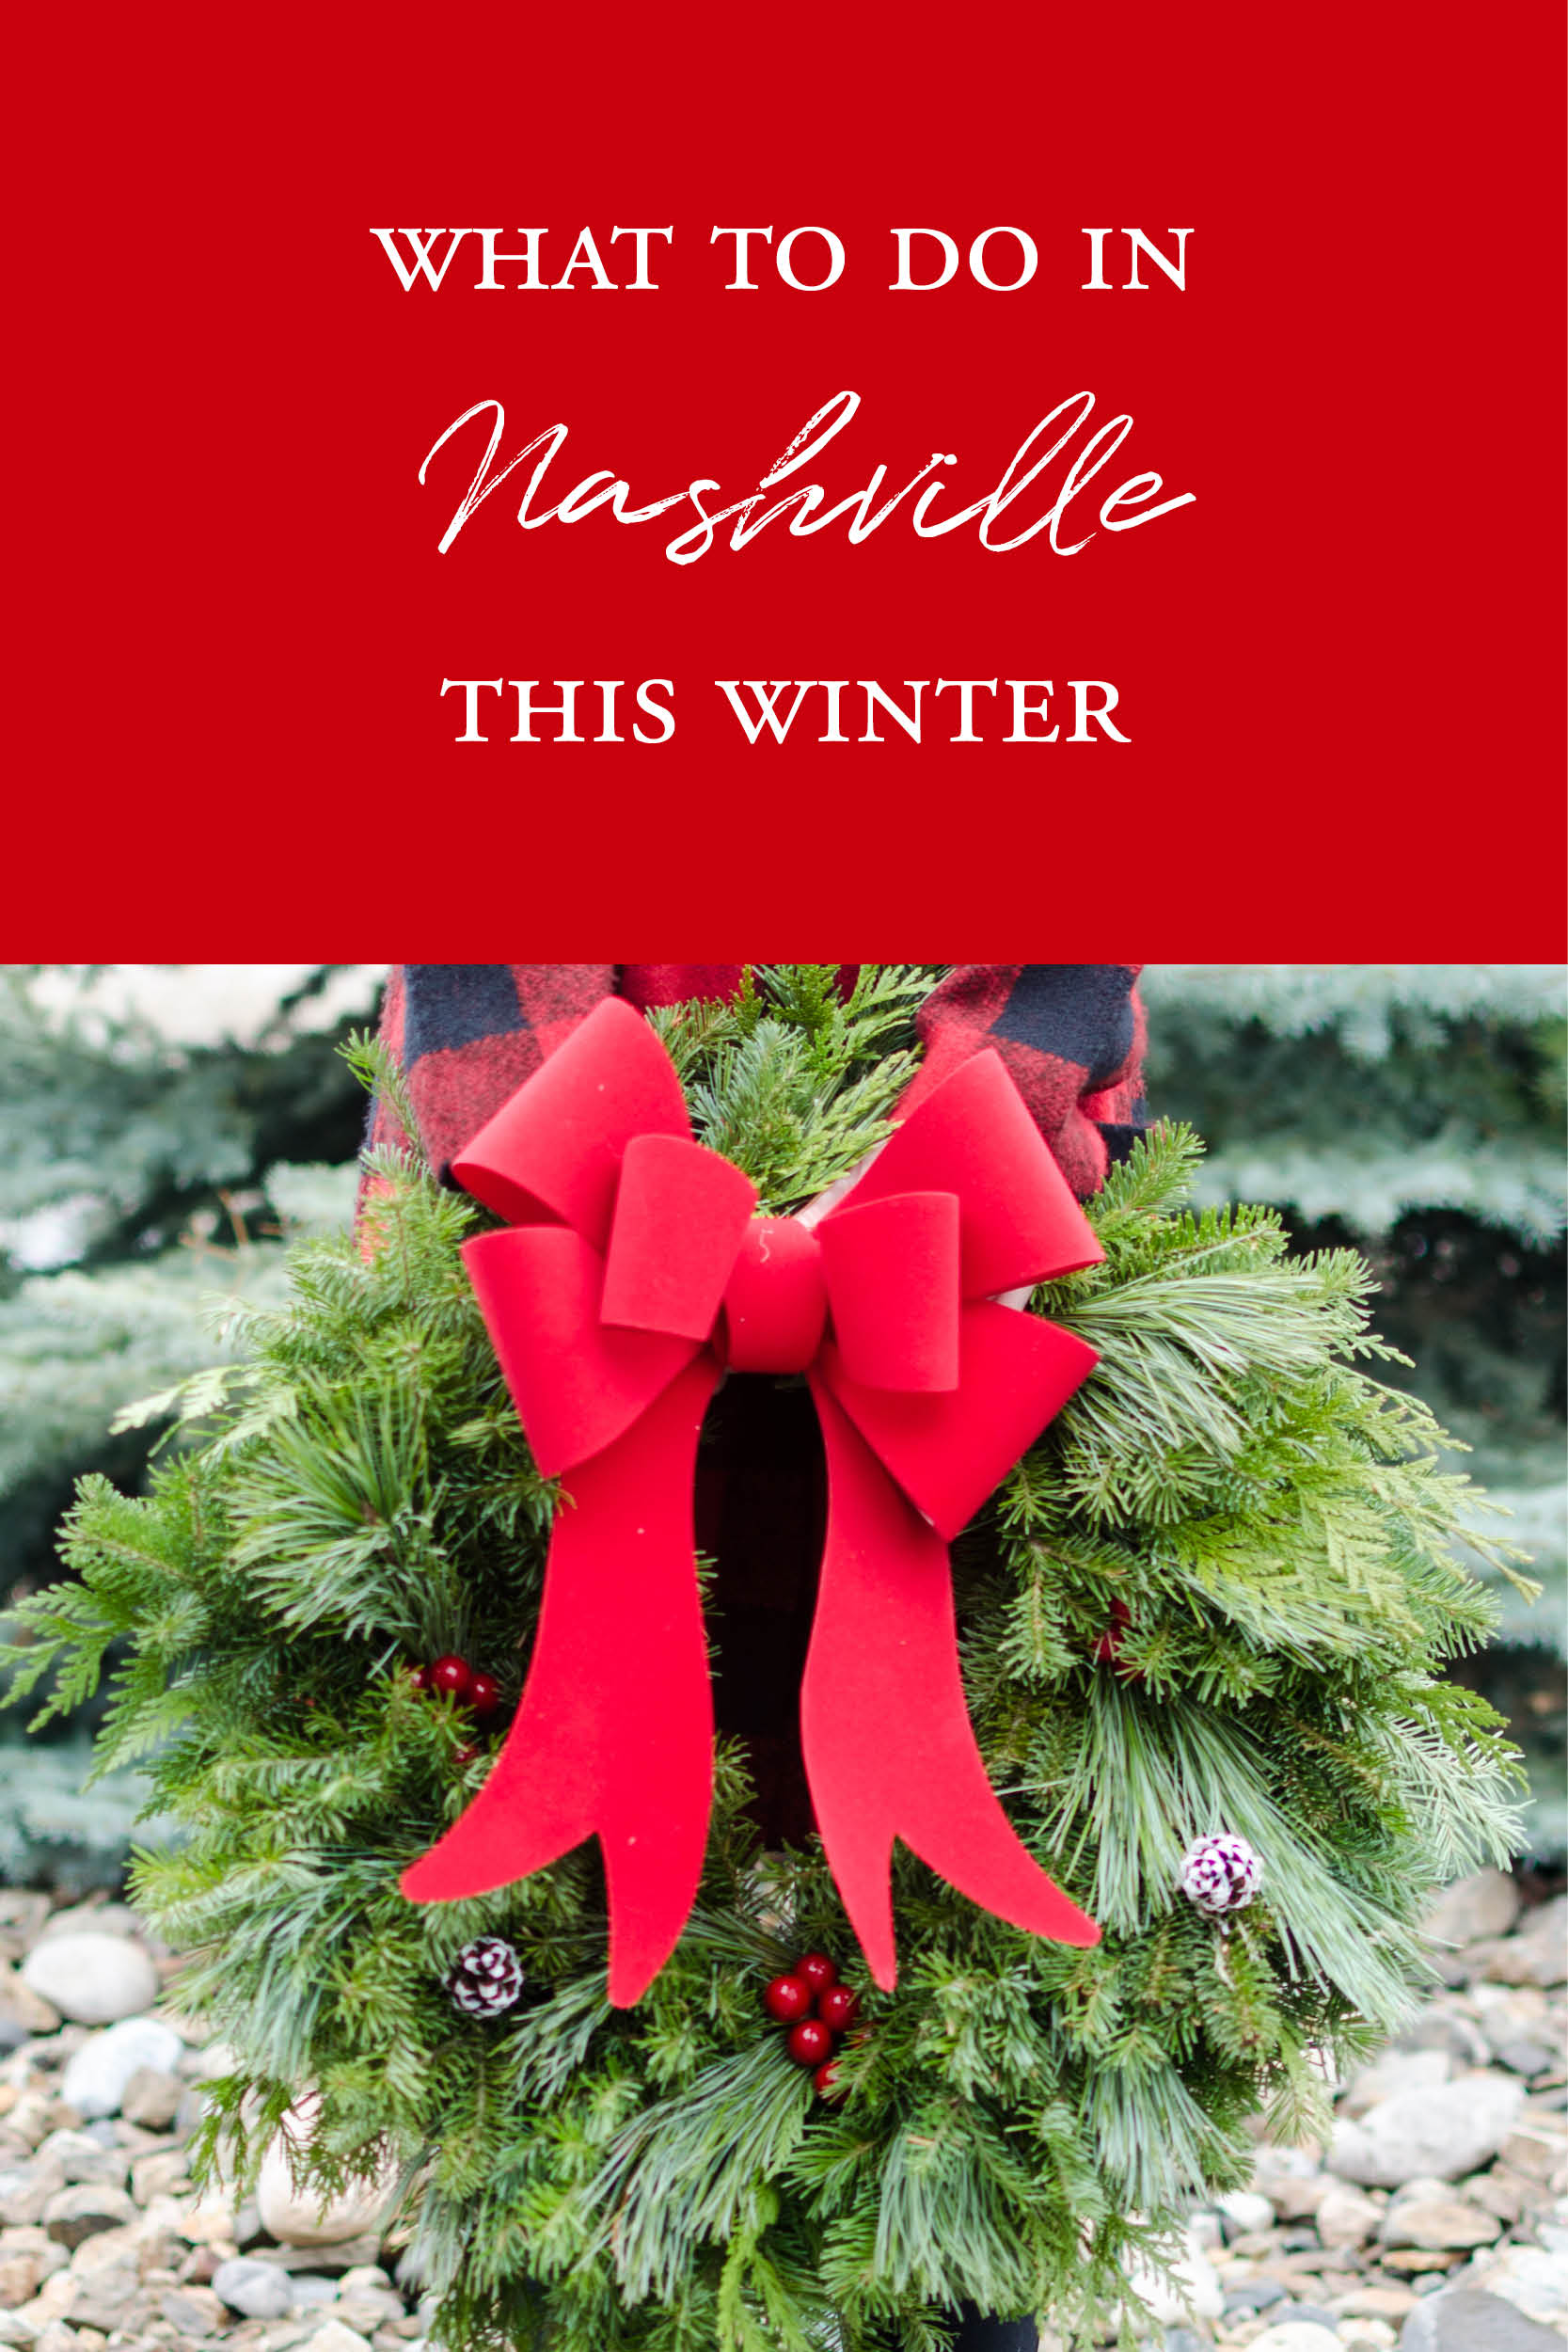 Studioist_Pinterest Design_Nashville Winter Events4.jpg